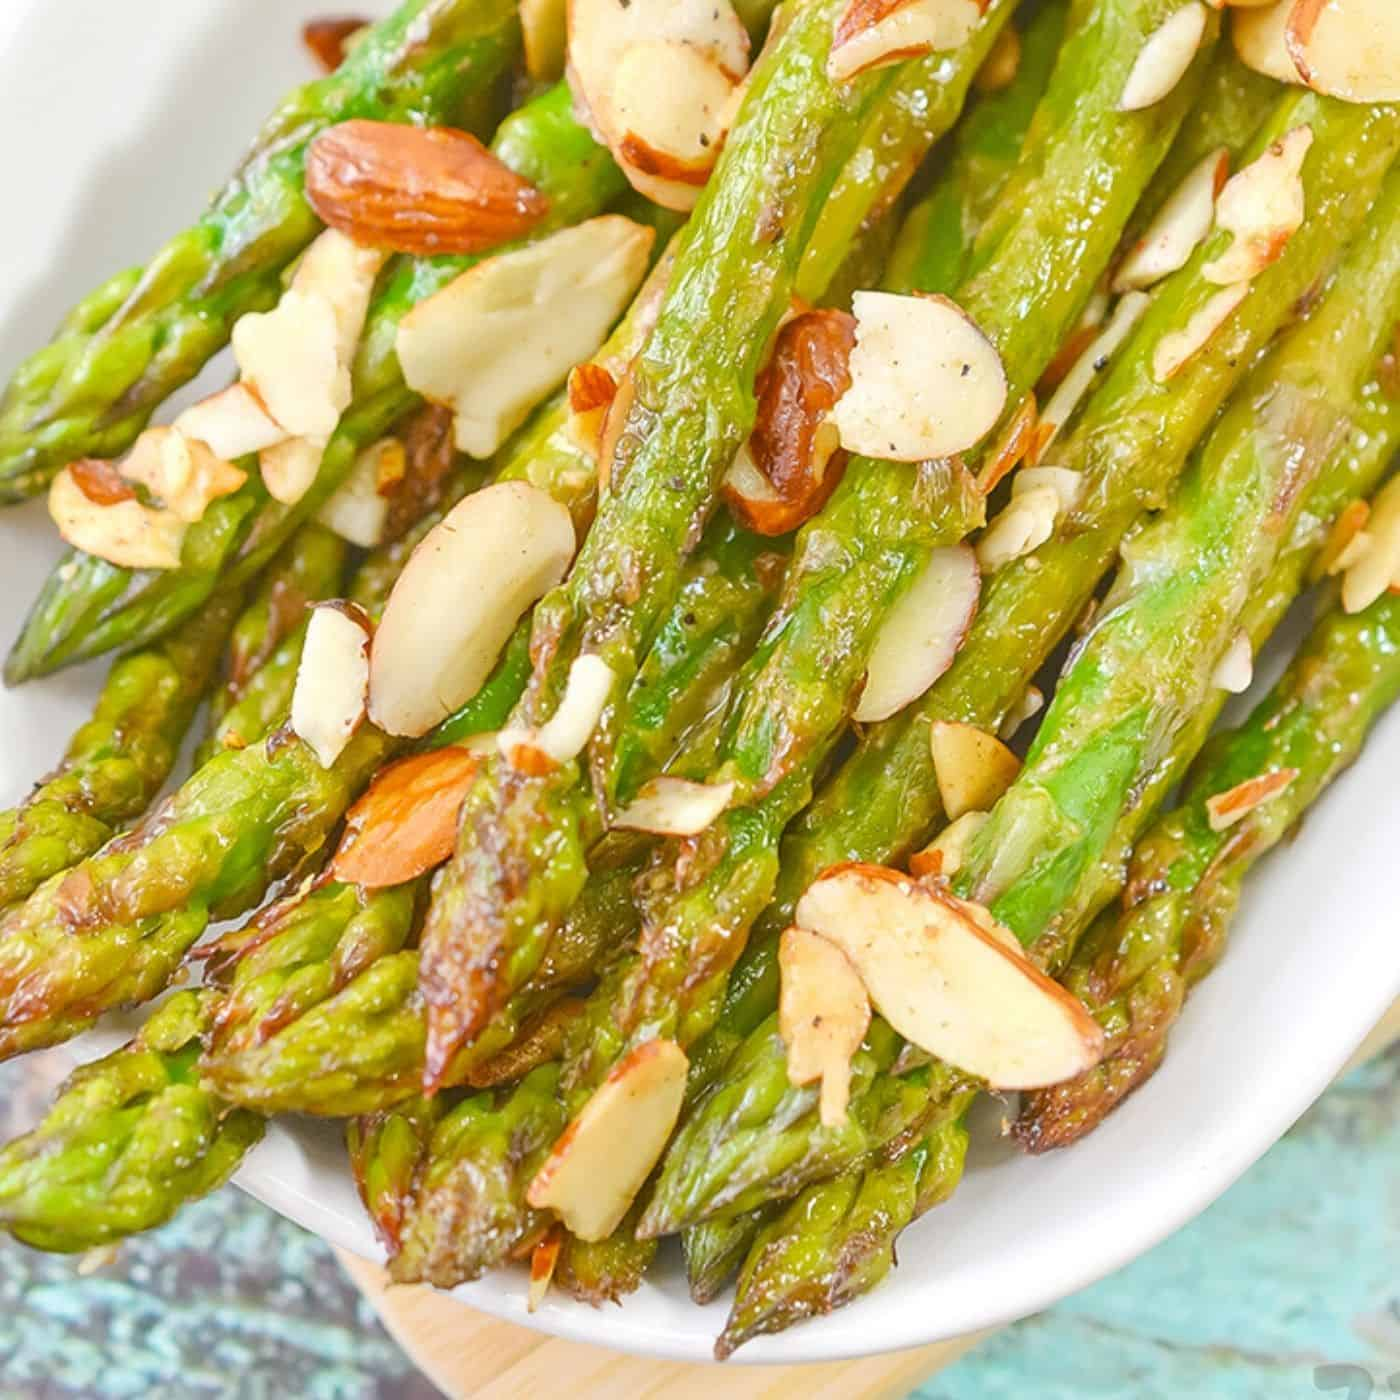 Sauteed Asparagus with almond seeds